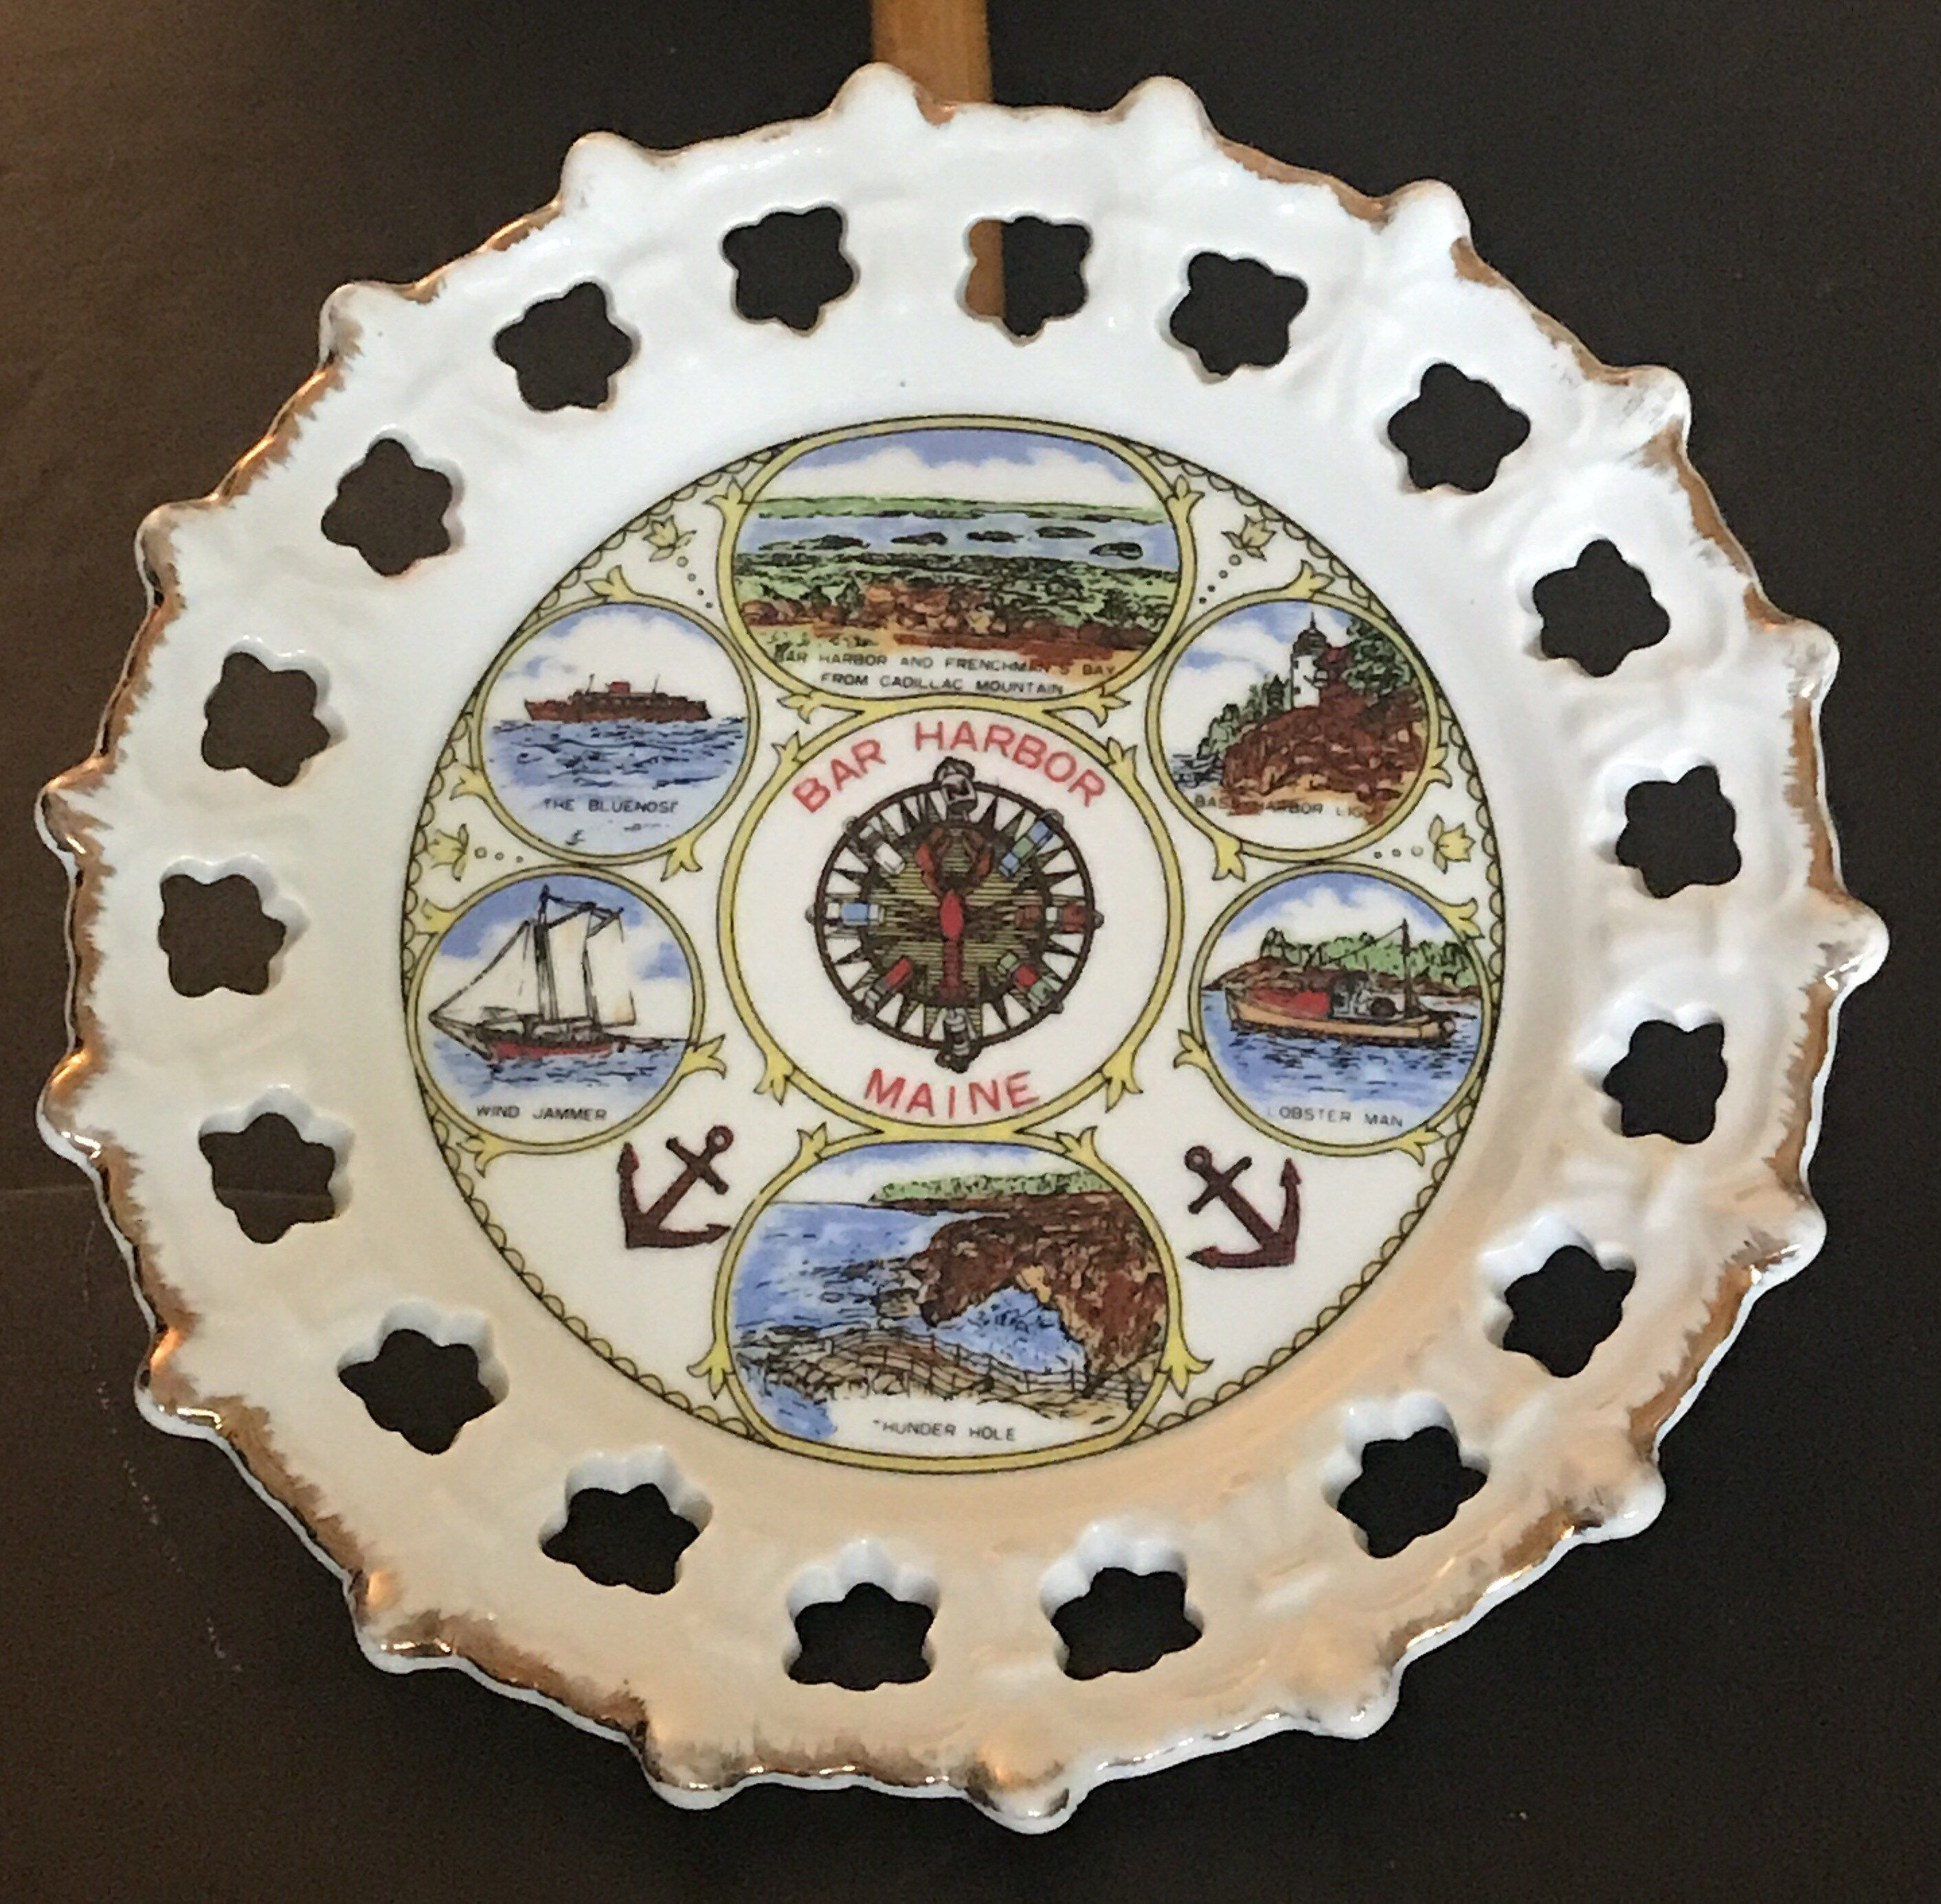 State Of Maine Bar Harbor Vintage Kitschy Collectible Souvenir Ceramic Display Plate 8 Inch In 2020 Plate Display Ceramics Kitschy